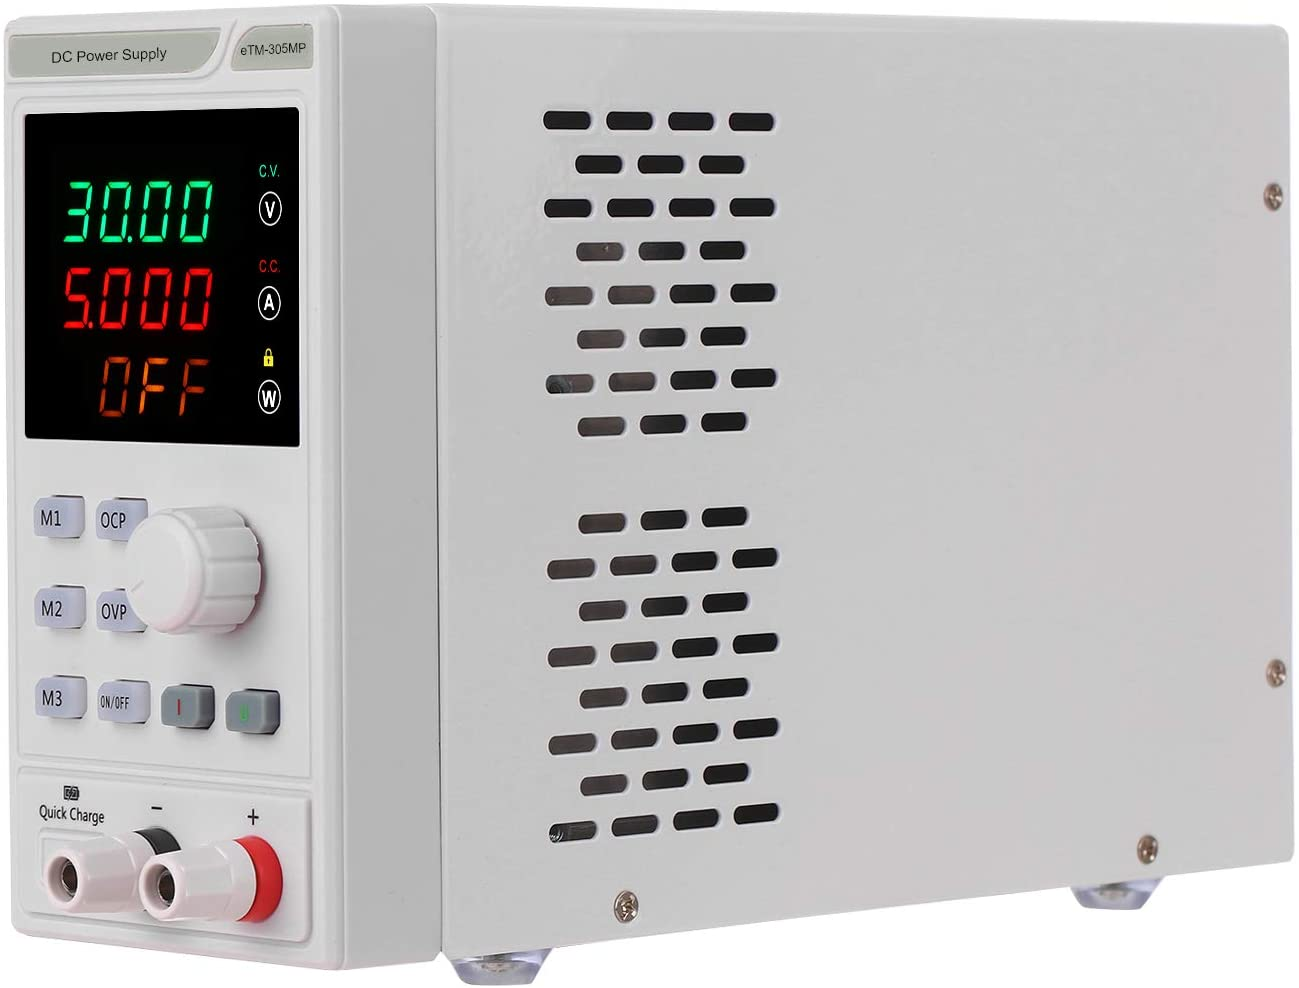 110V 0-30V 0-5A Programmable DC Power Supply Power Regulator 4-digit LED Display Voltage and Current Mini Regulated Power Supply with Alligator Leads